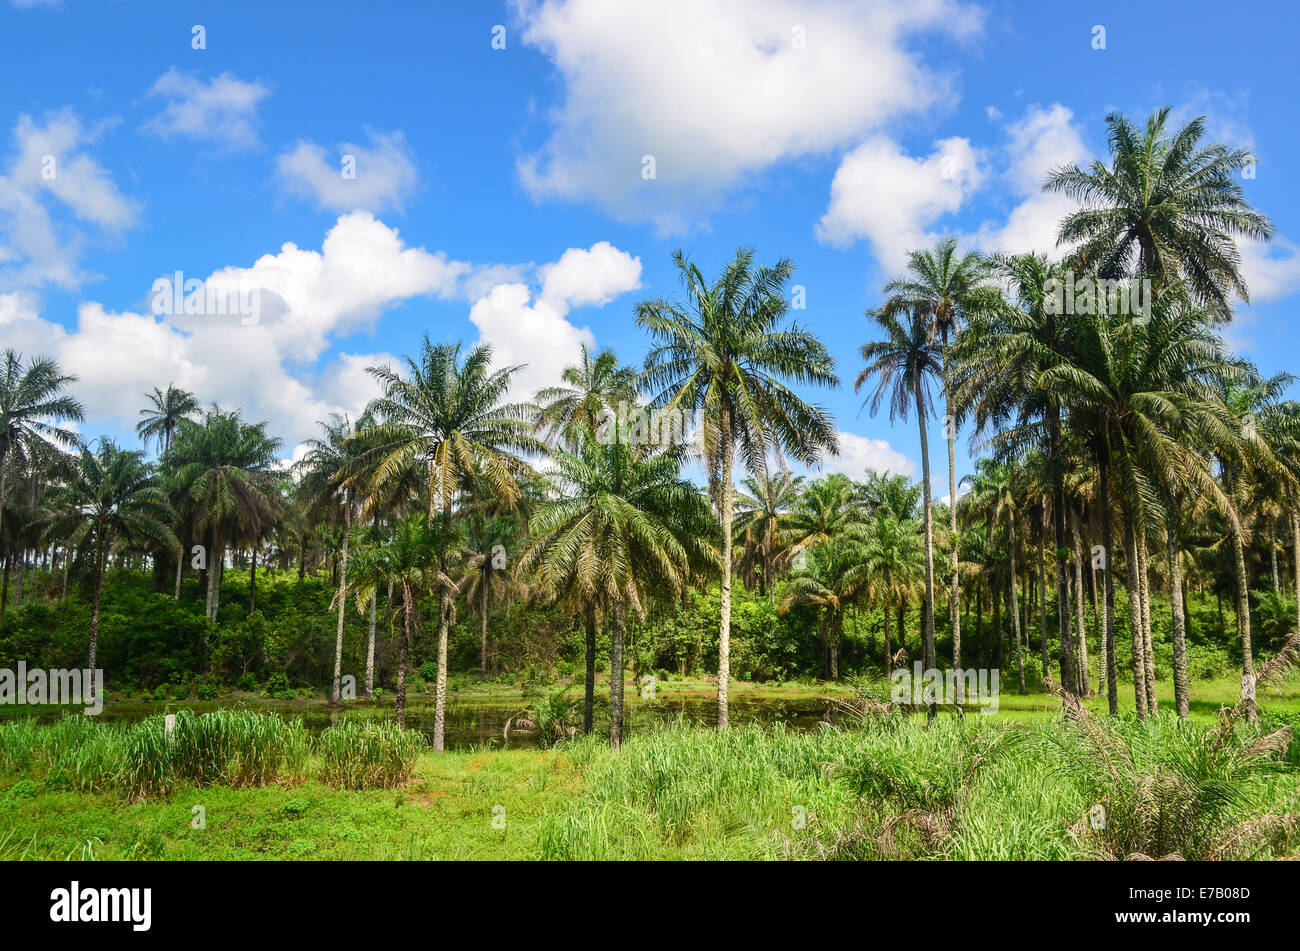 Palm trees, Sierra Leone, Africa - Stock Image